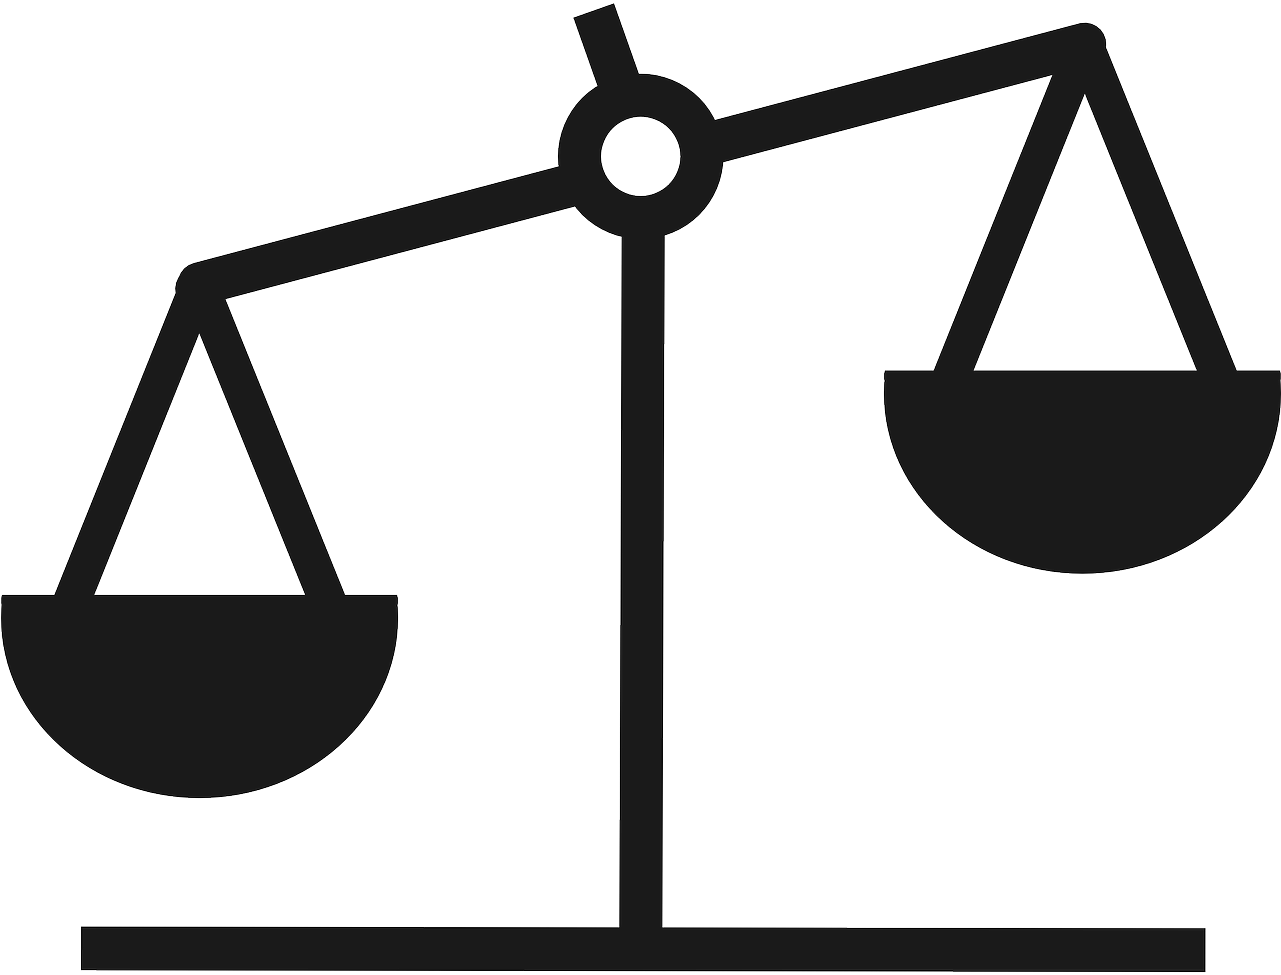 Weight clipart balance. Hd scale silhouette justice